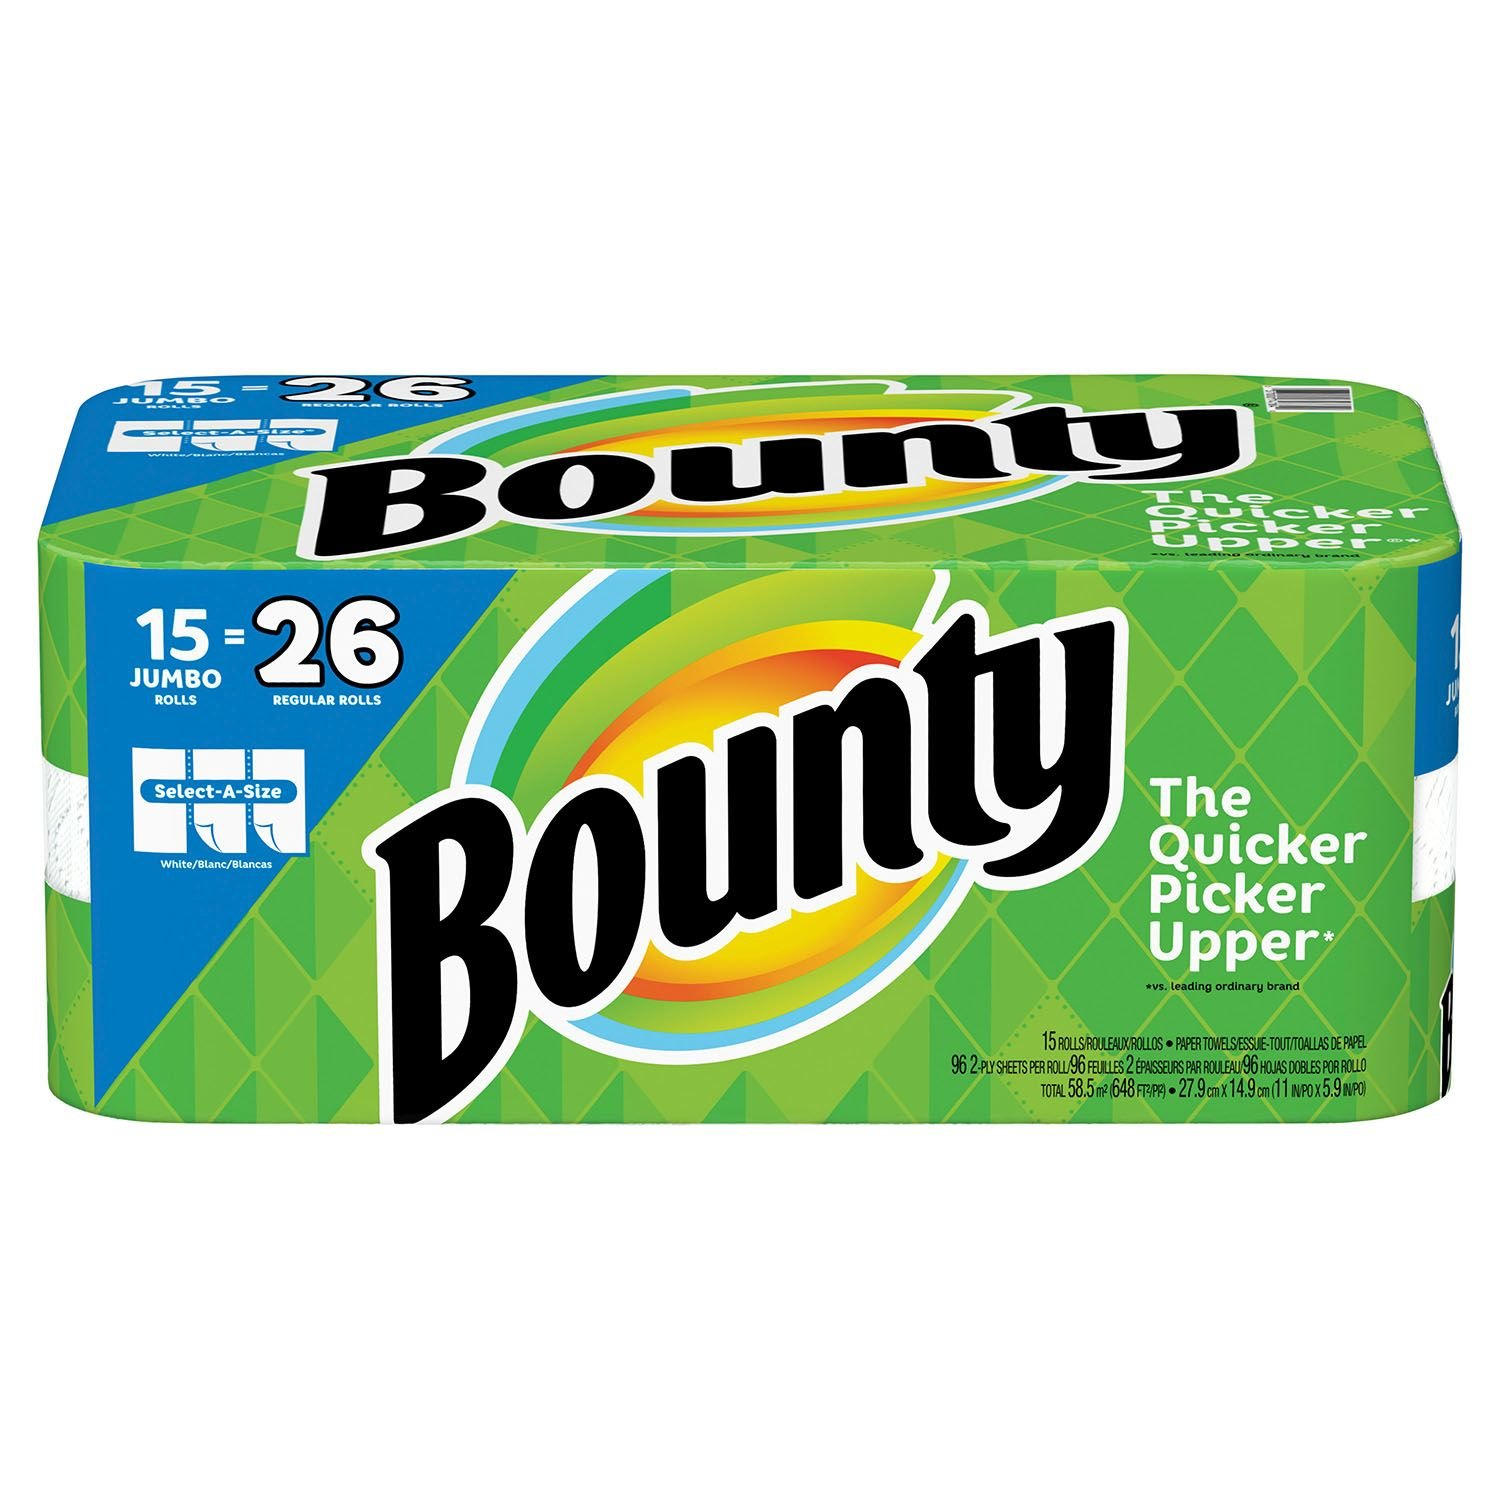 Bounty Select-a-Size ペーパータオル ホワイト 15ジャンボロール B07J3W9S7L